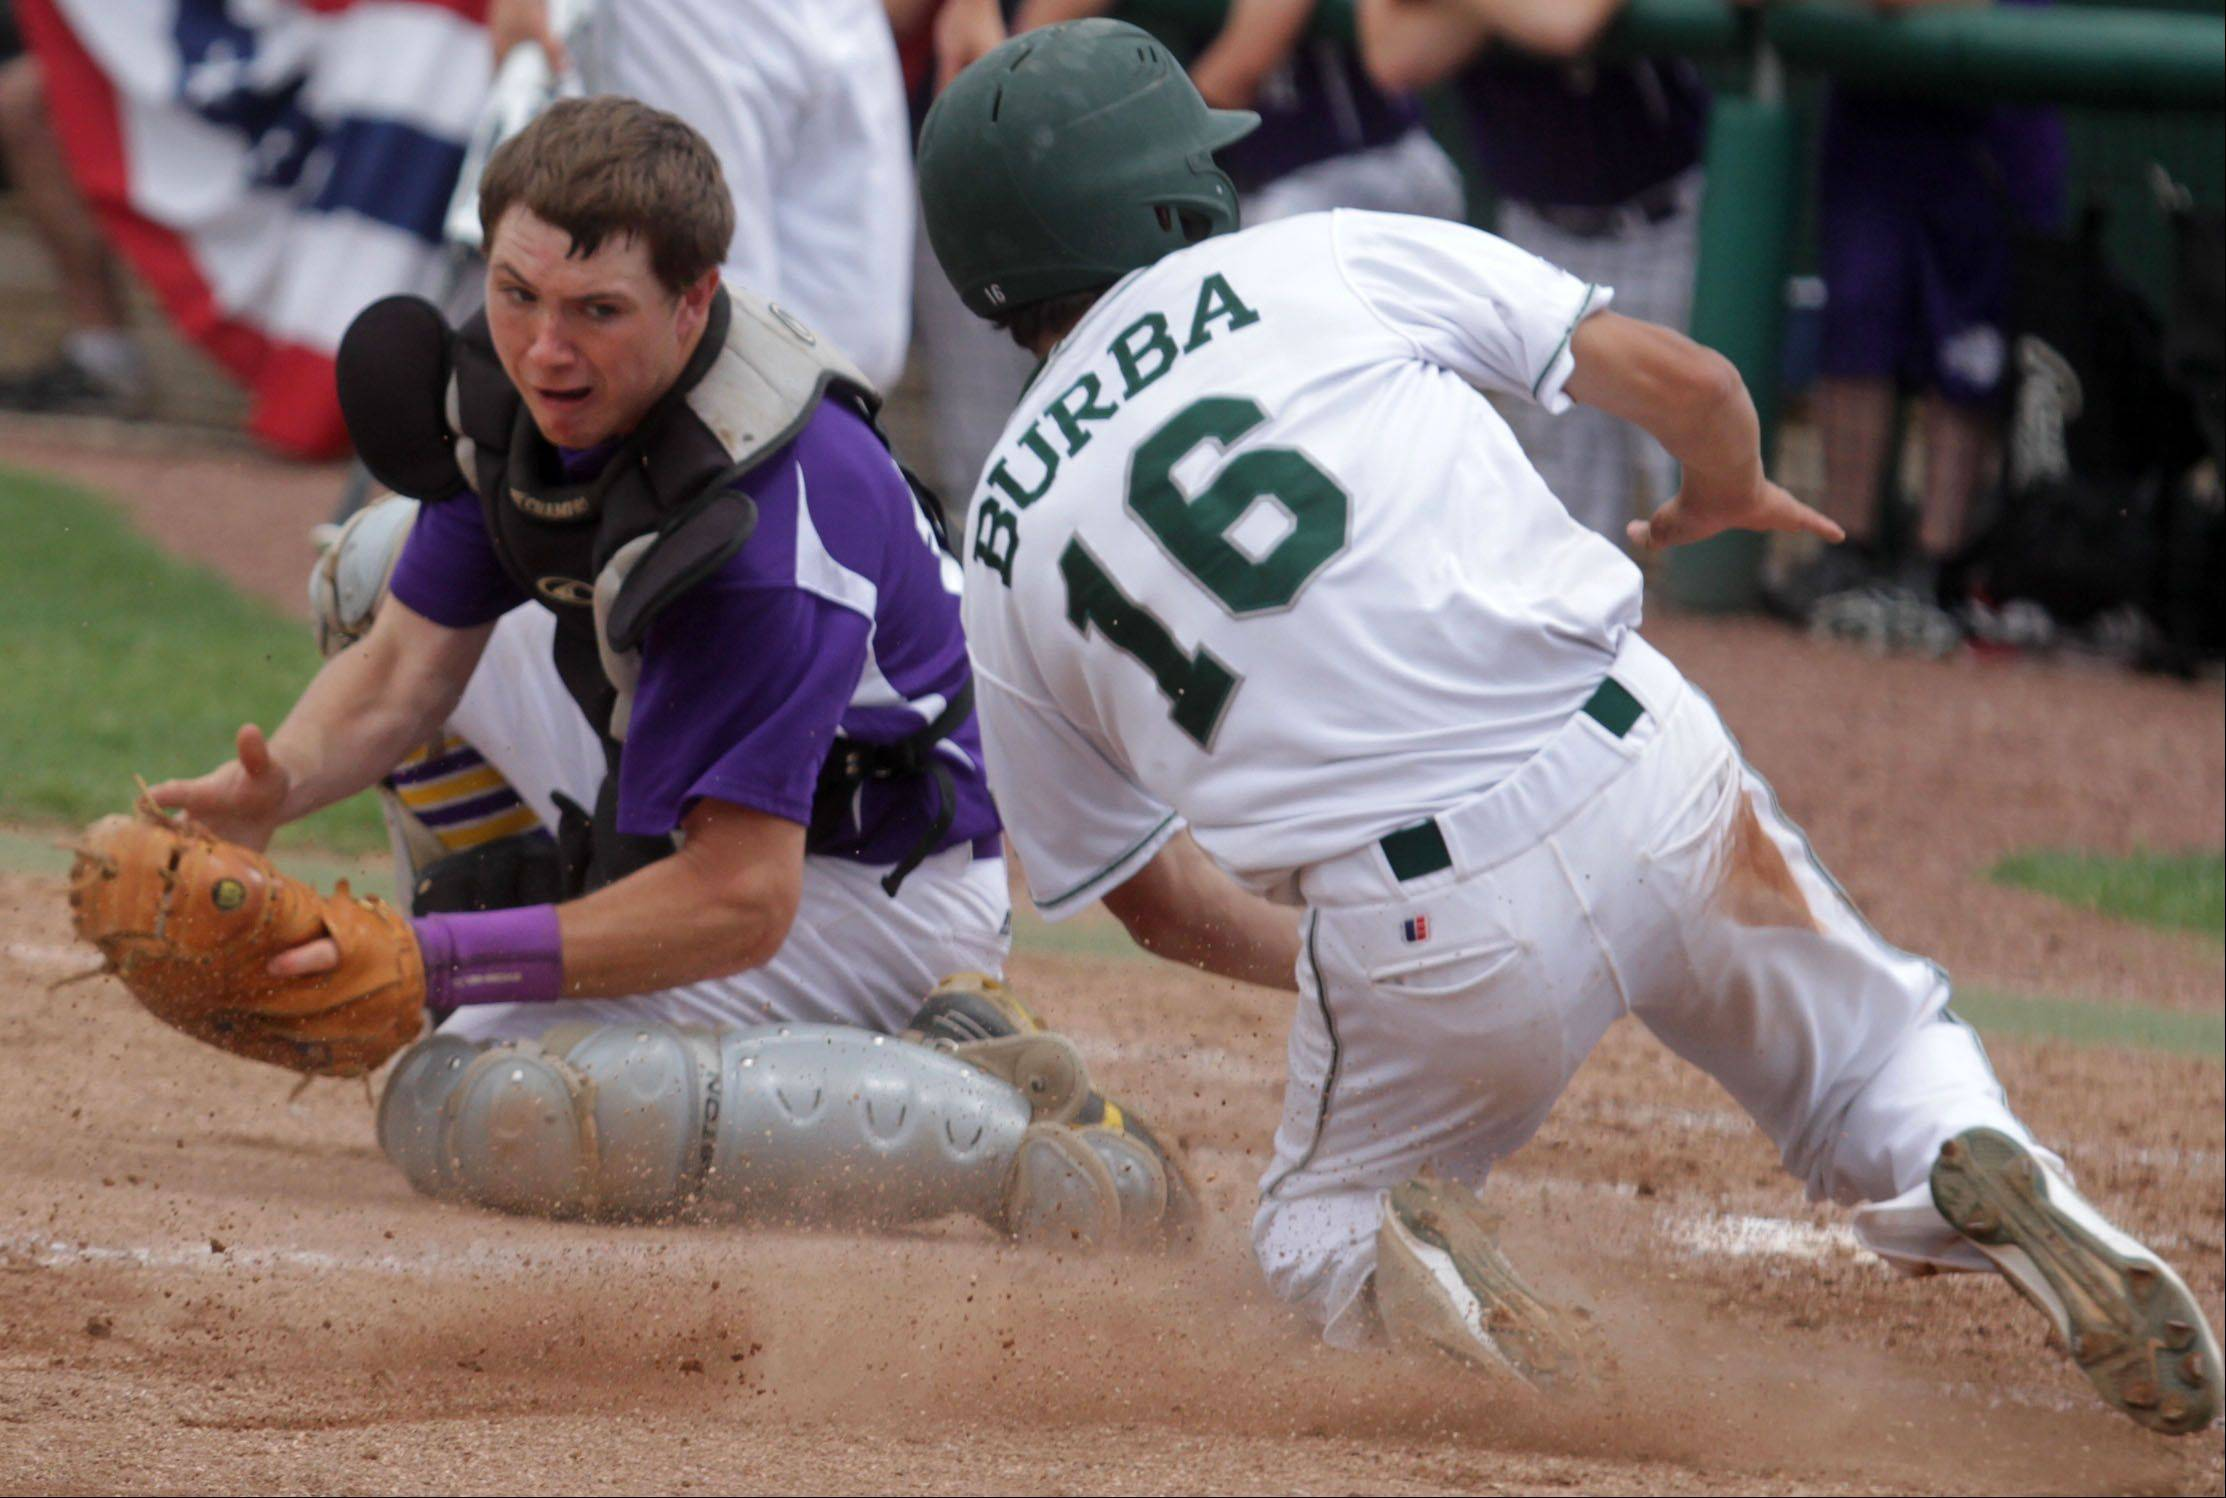 Wauconda catcher Kyle Bock, with the ball in his glove, can't quite tag Grayslake Central's Pat Burba, who scores in the Rams' 6-4 sectional championship effort Saturday.